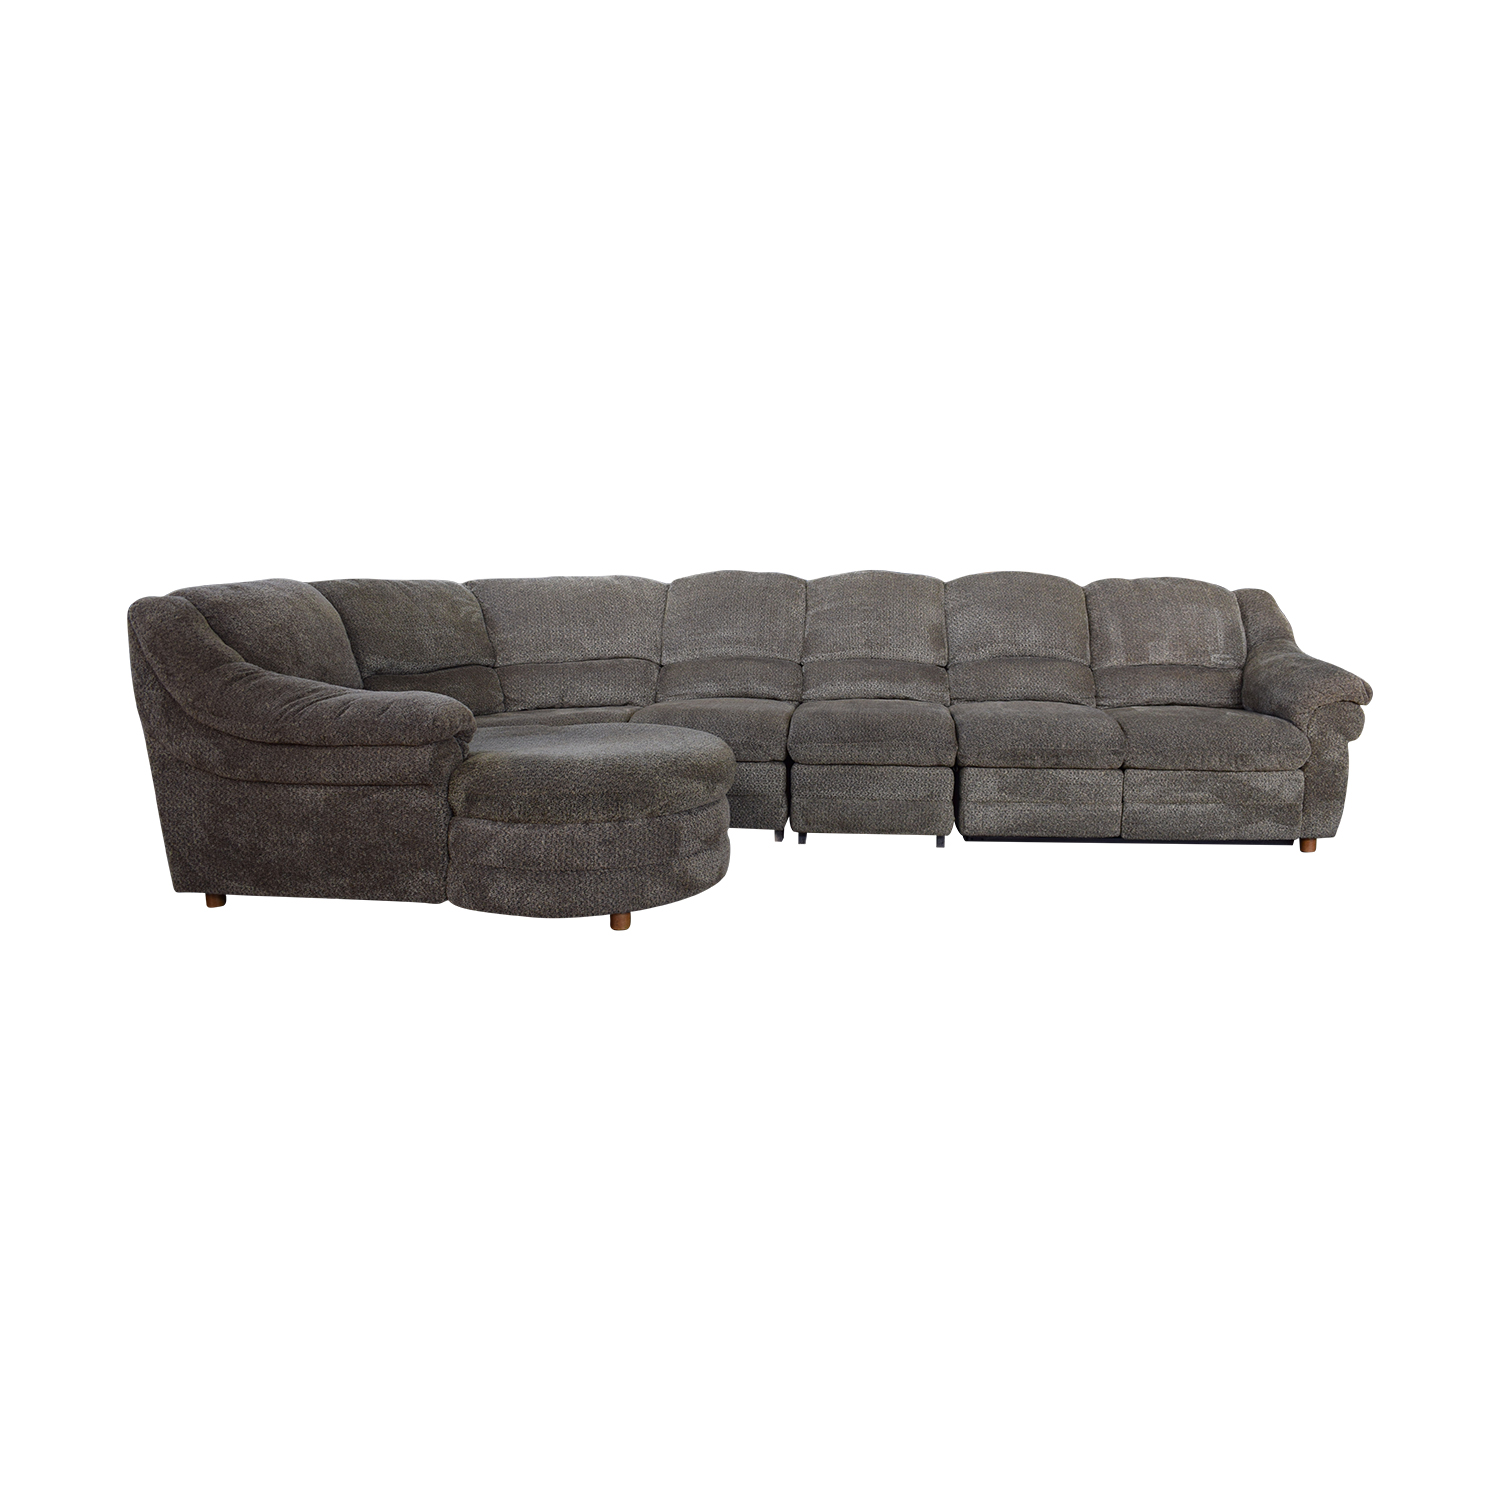 Lane Home Furnishings Lane Home Furnishings Sectional Sofa for sale